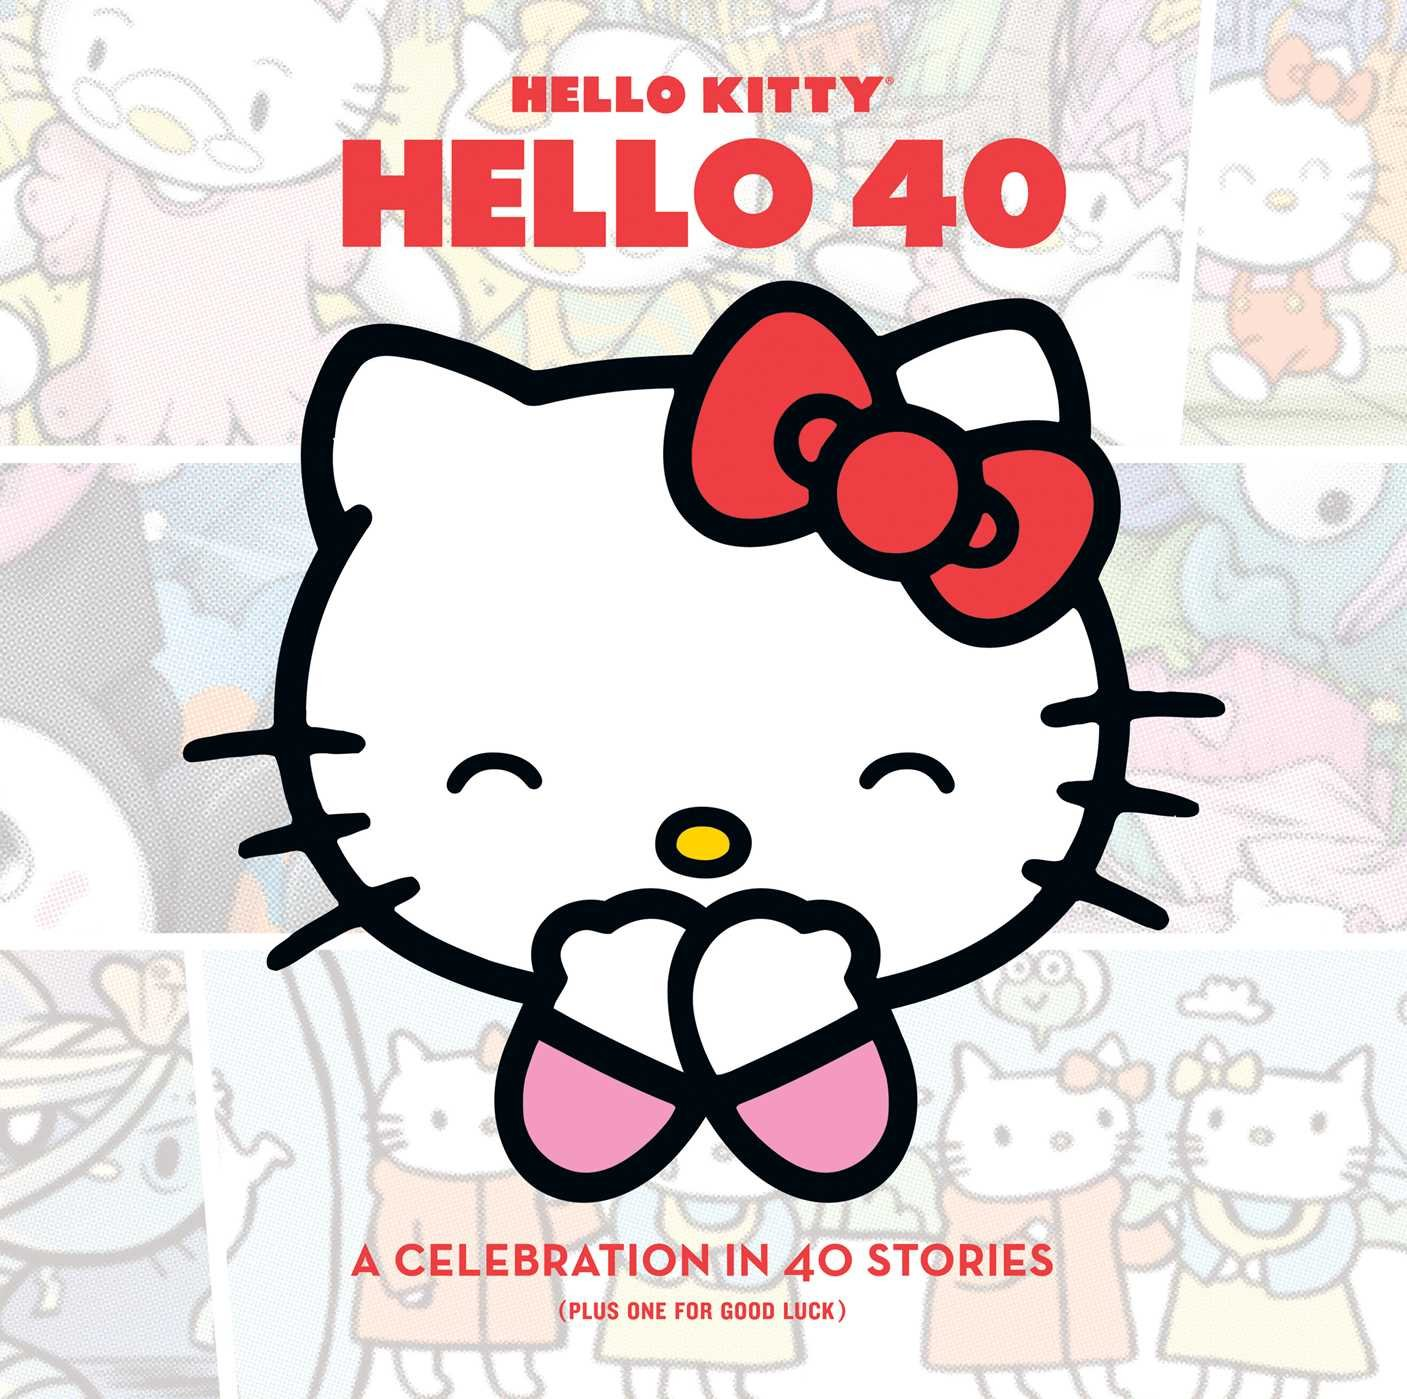 Flatting     In 1974, Hello Kitty stepped on the scene,  and she's had the world wrapped around her little red bow ever since. Here, some of her biggest fans—from comic artists to muralists to toy creators—pay tribute in story and art.